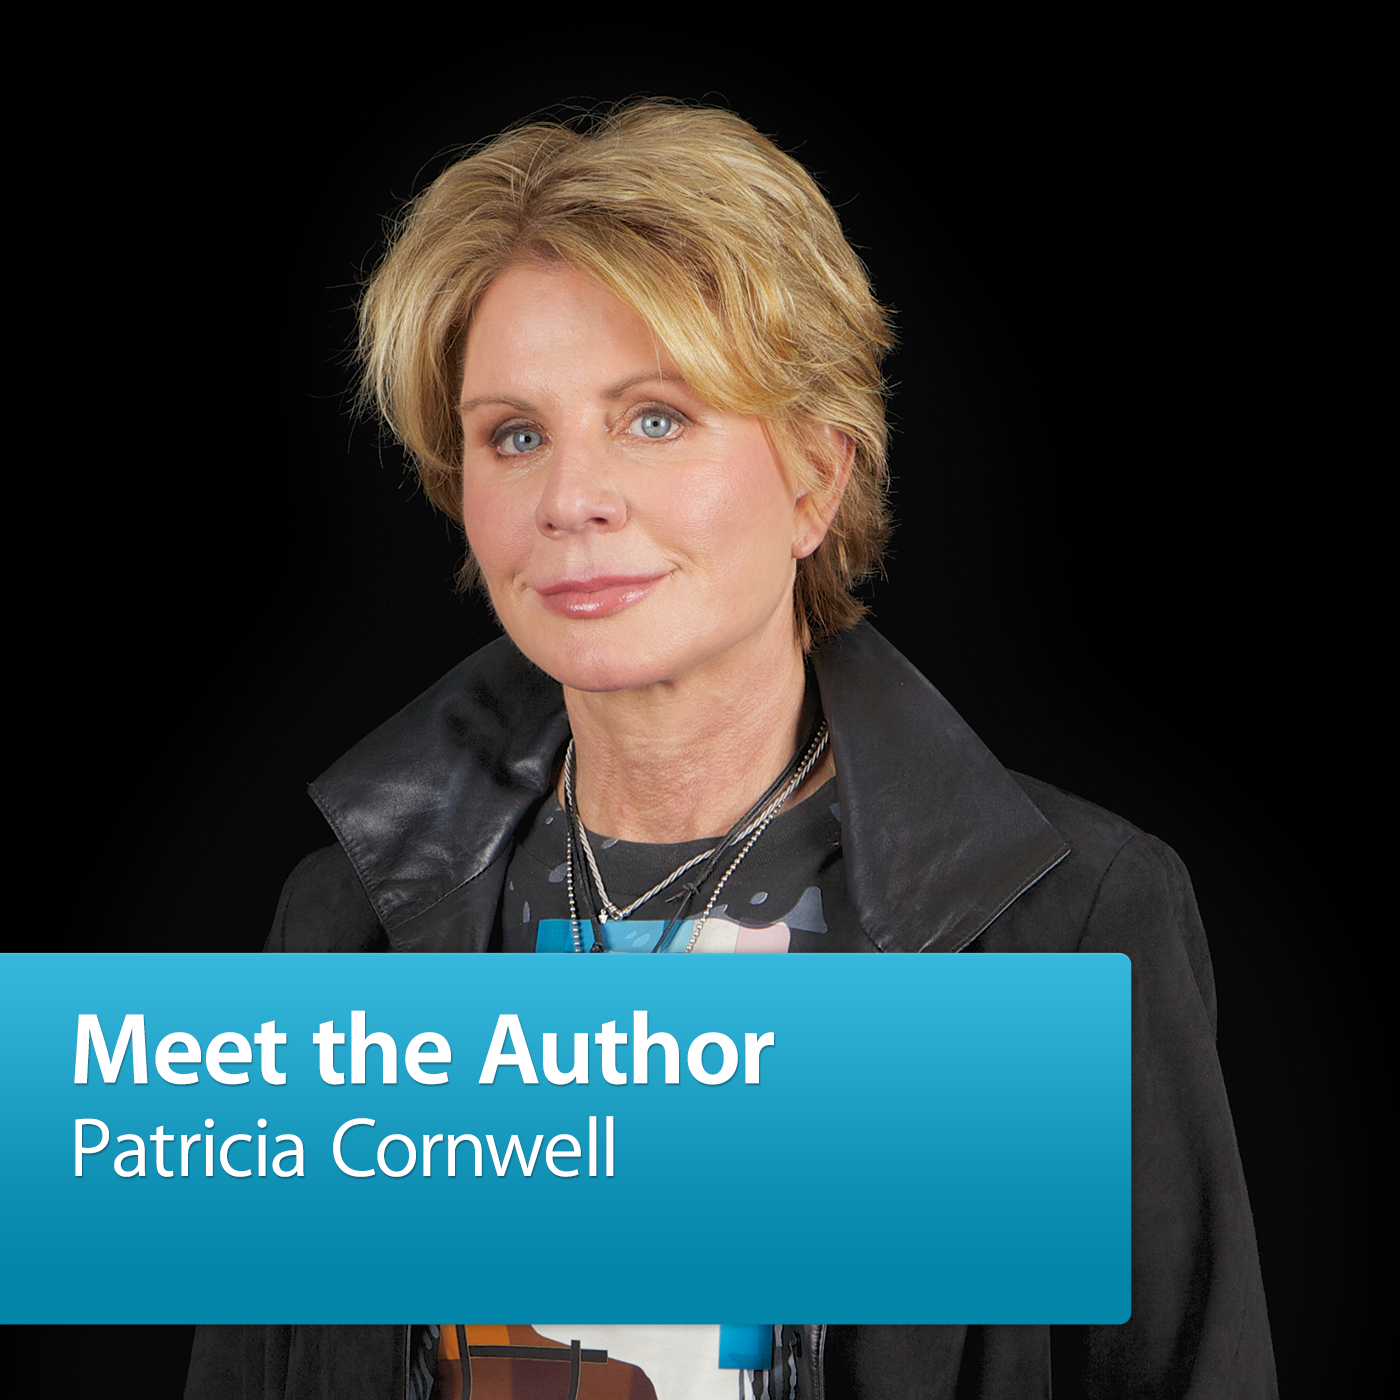 Patricia Cornwell: Meet the Author